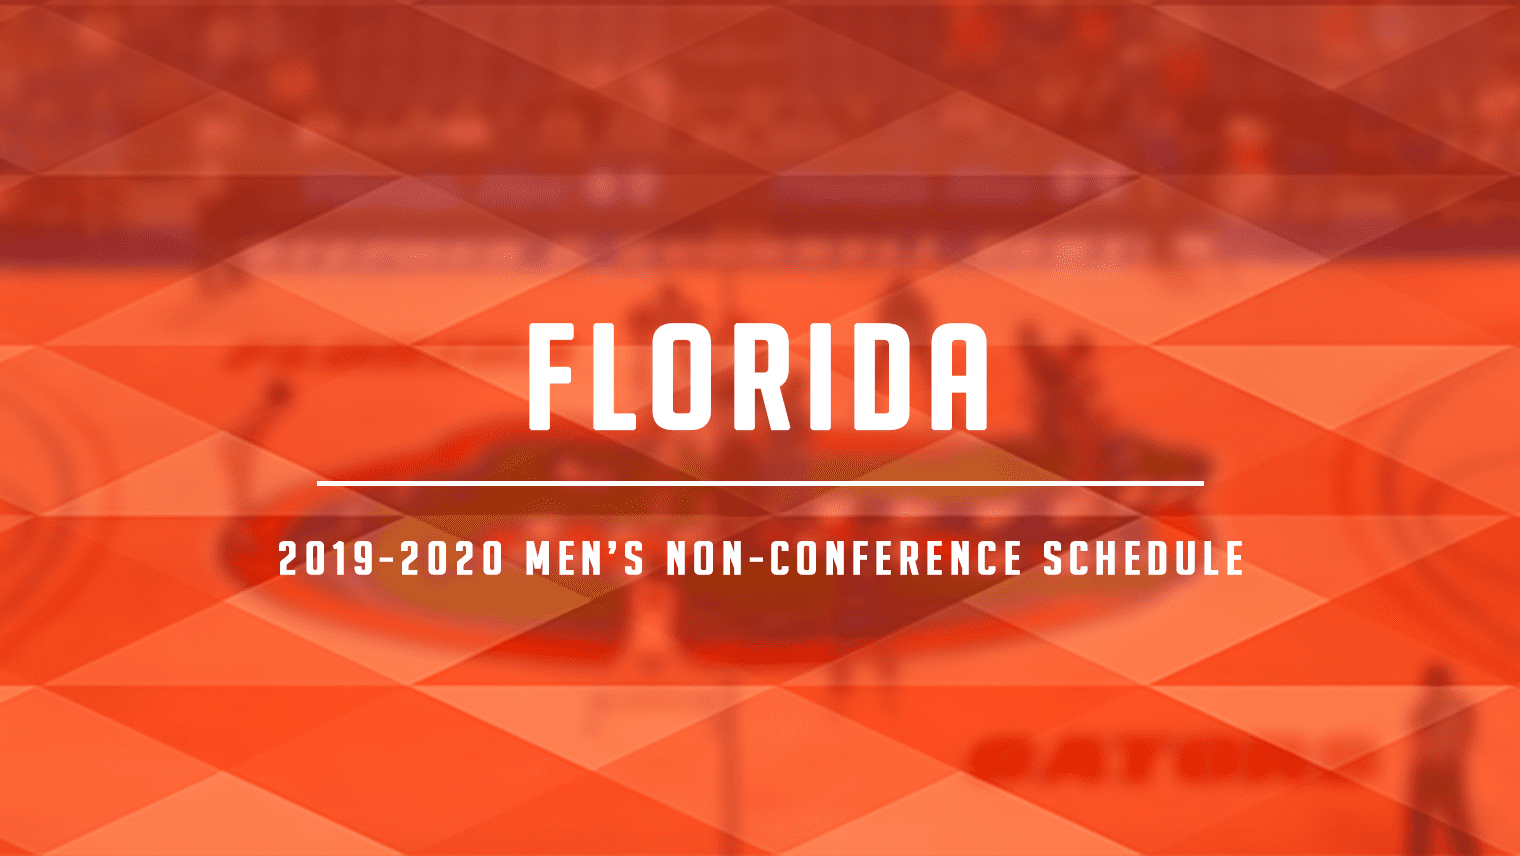 Florida has a very difficult non-conference slate, which includes Connecticut, Utah State, Florida State, Baylor, Providence, Butler and more.